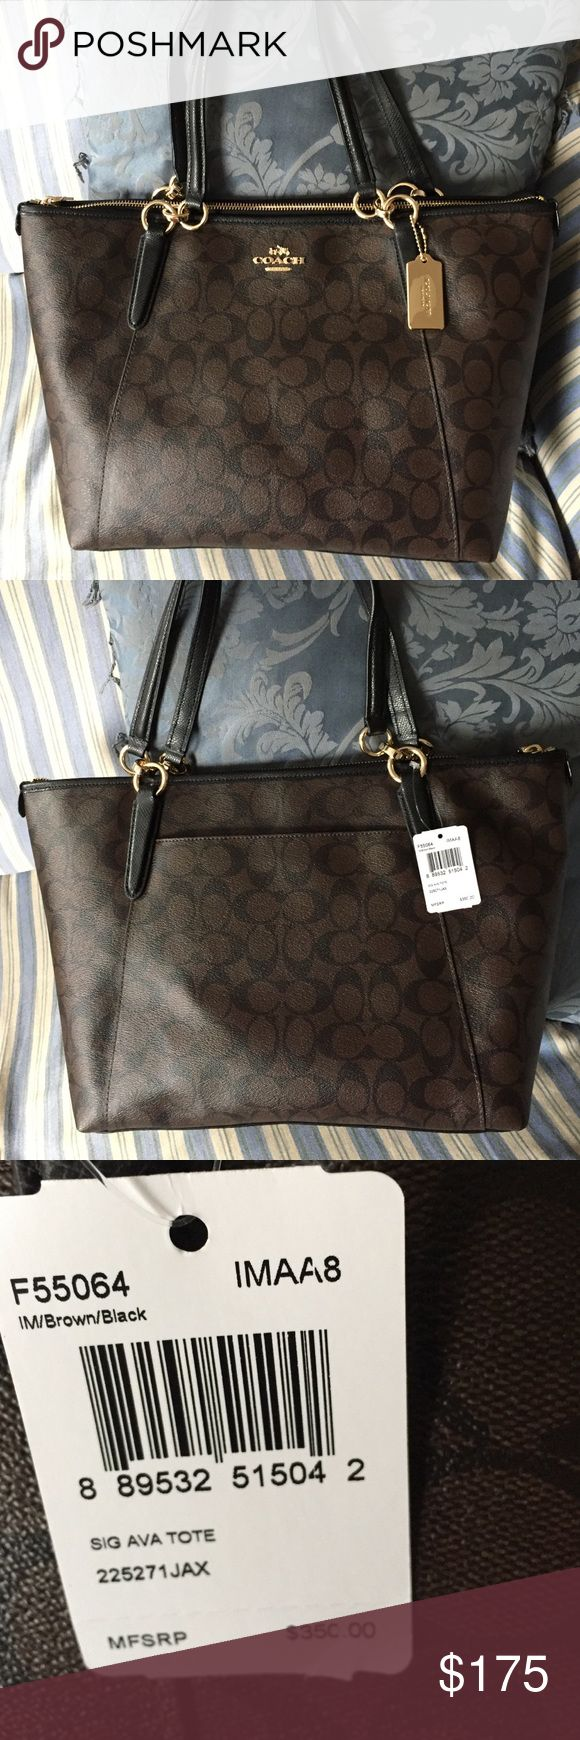 Coach Signature Ava Tote Brown/Black with goldtone hardware and a gold hangtag. Back external pocket. Roomy interior. Fits comfortably on the shoulder. Zipper closure. Coach Bags Totes